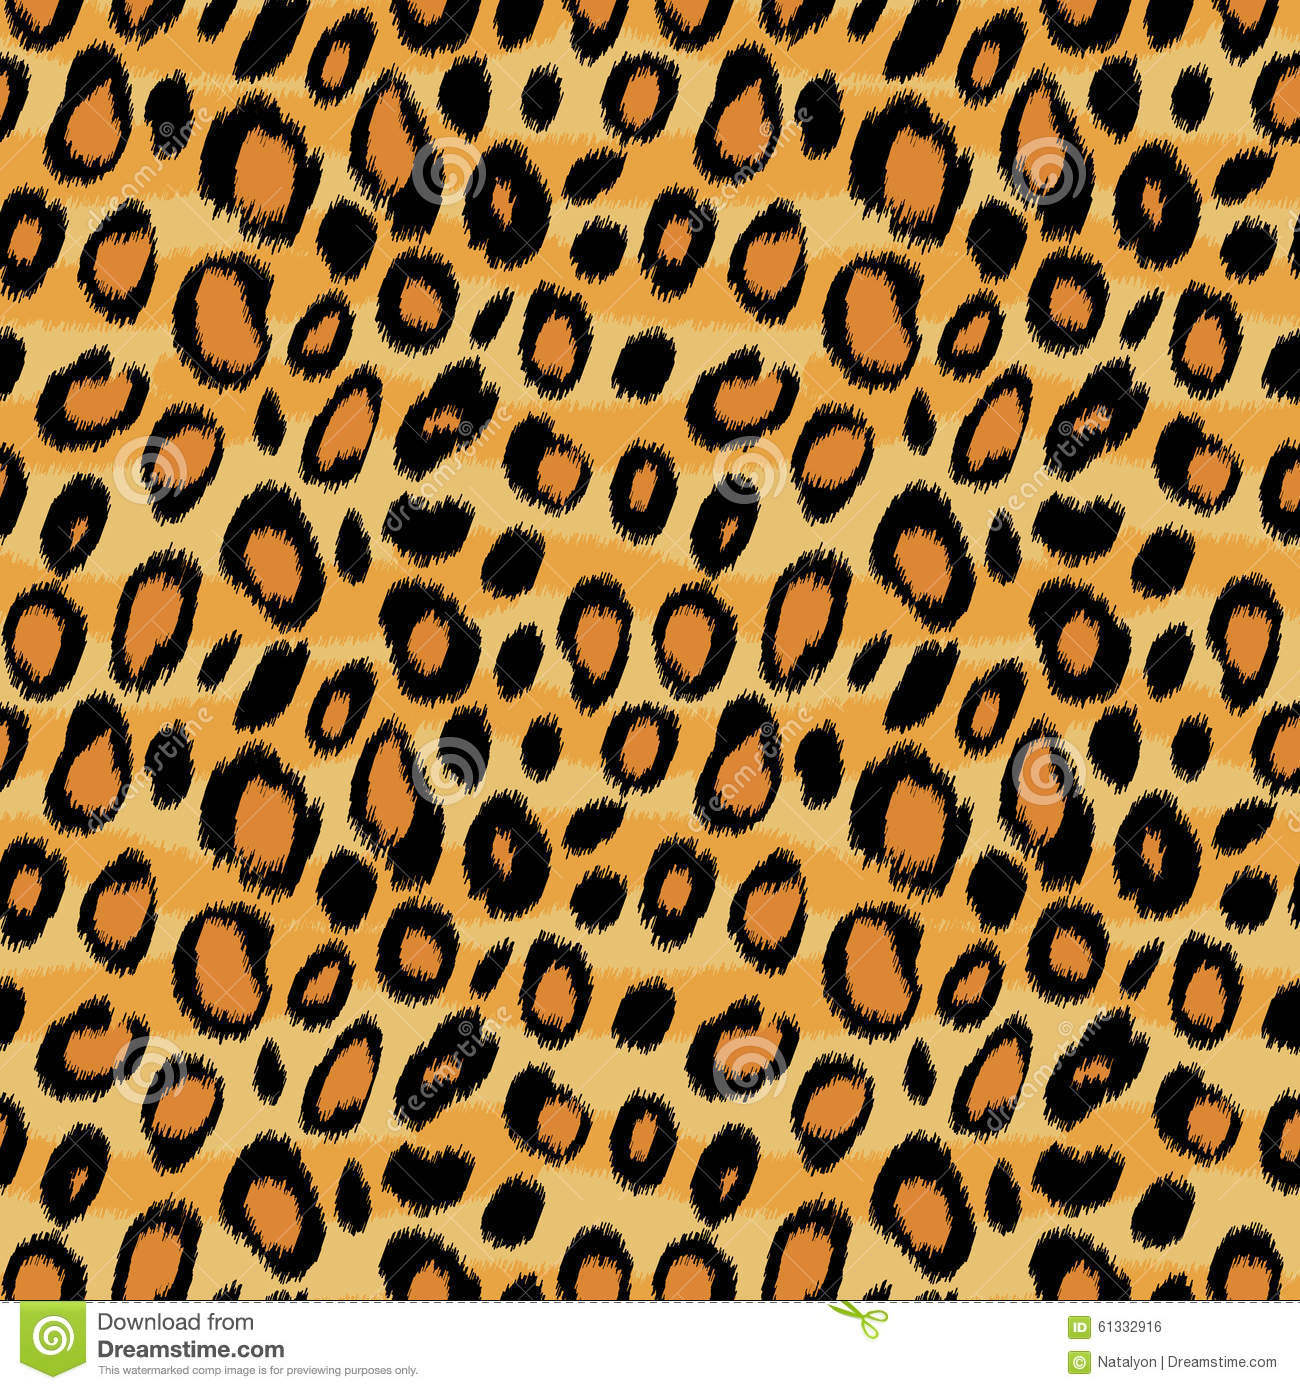 animal skin patterns seamless - photo #39